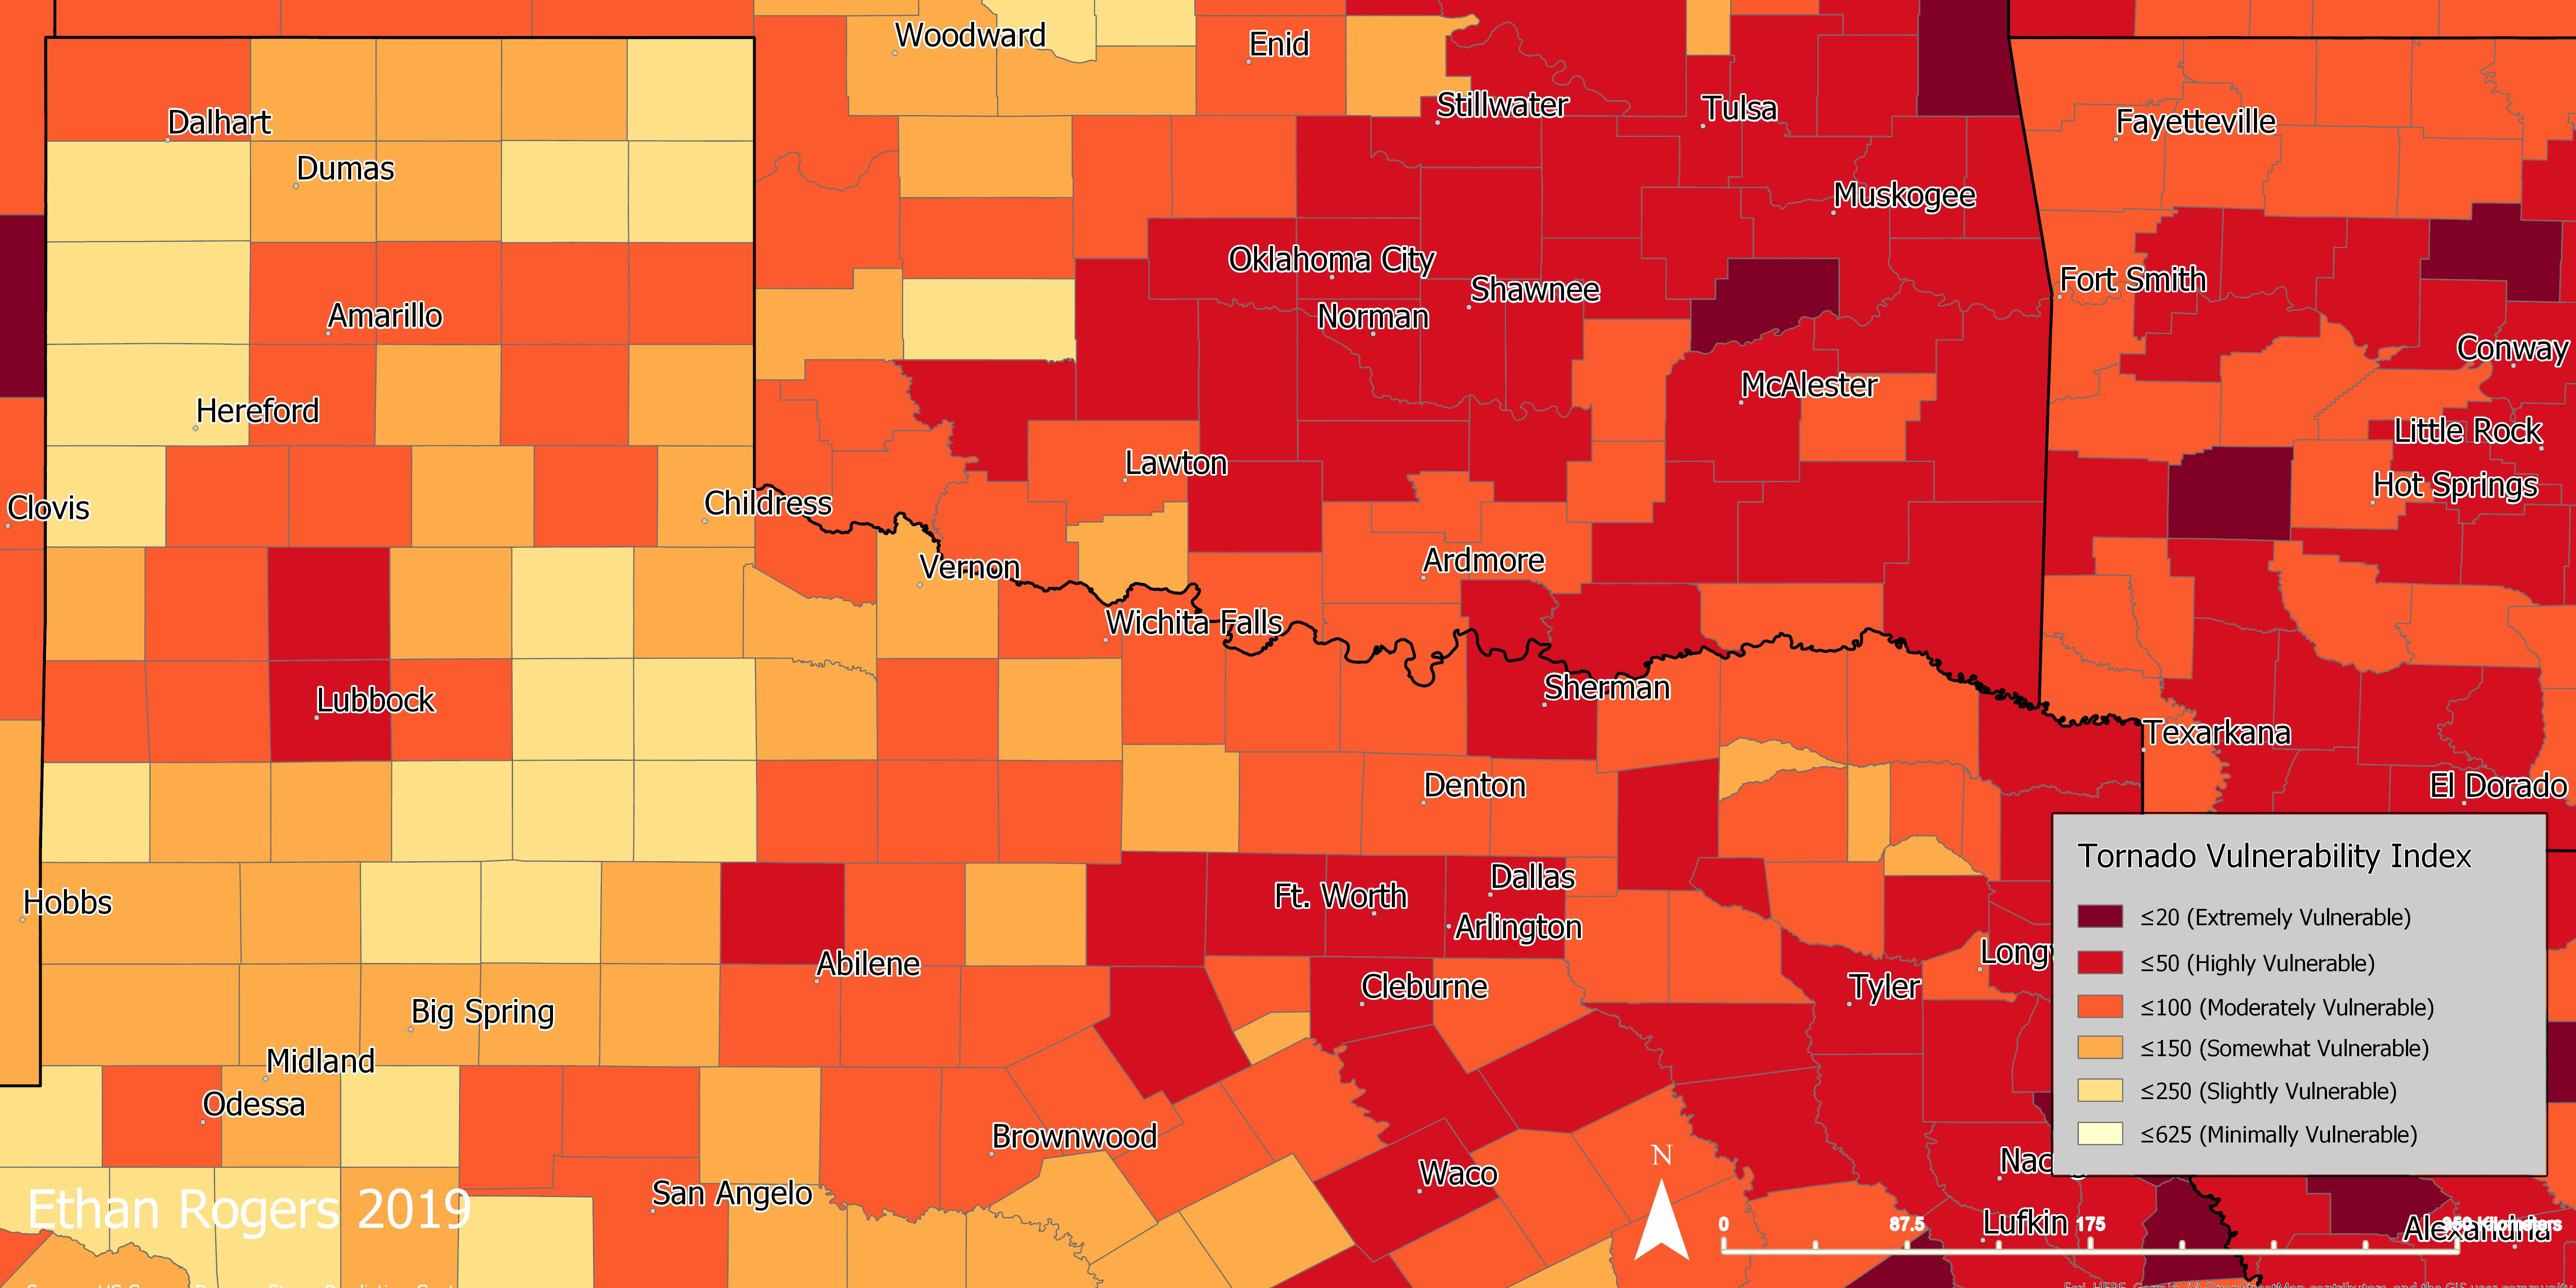 Tornado Alley Texas Map Which counties in North Texas are most vulnerable to tornadoes